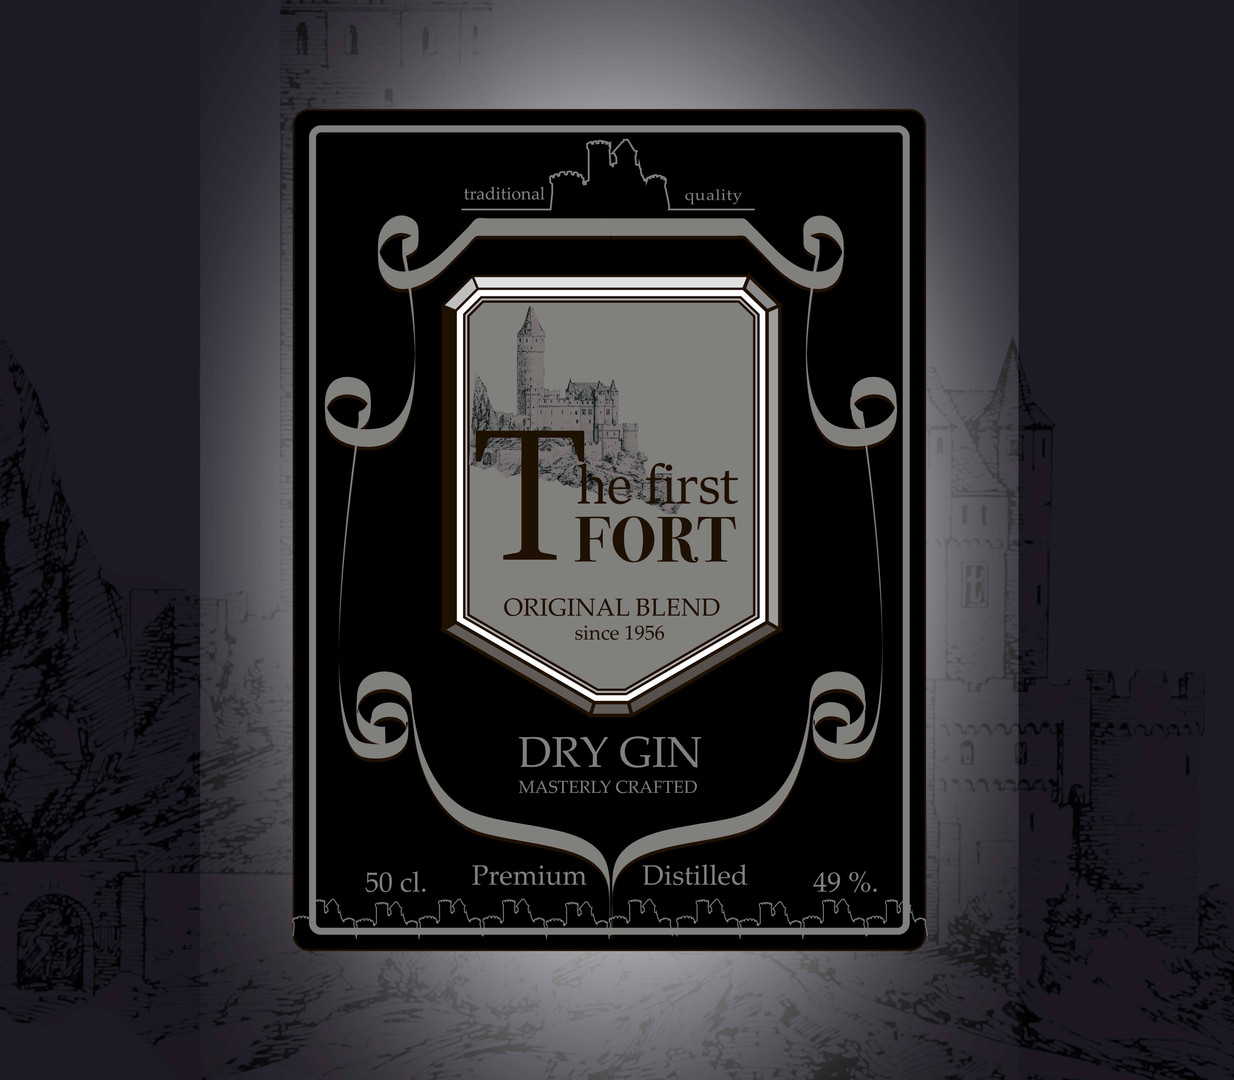 label_the_first_fort.jpg